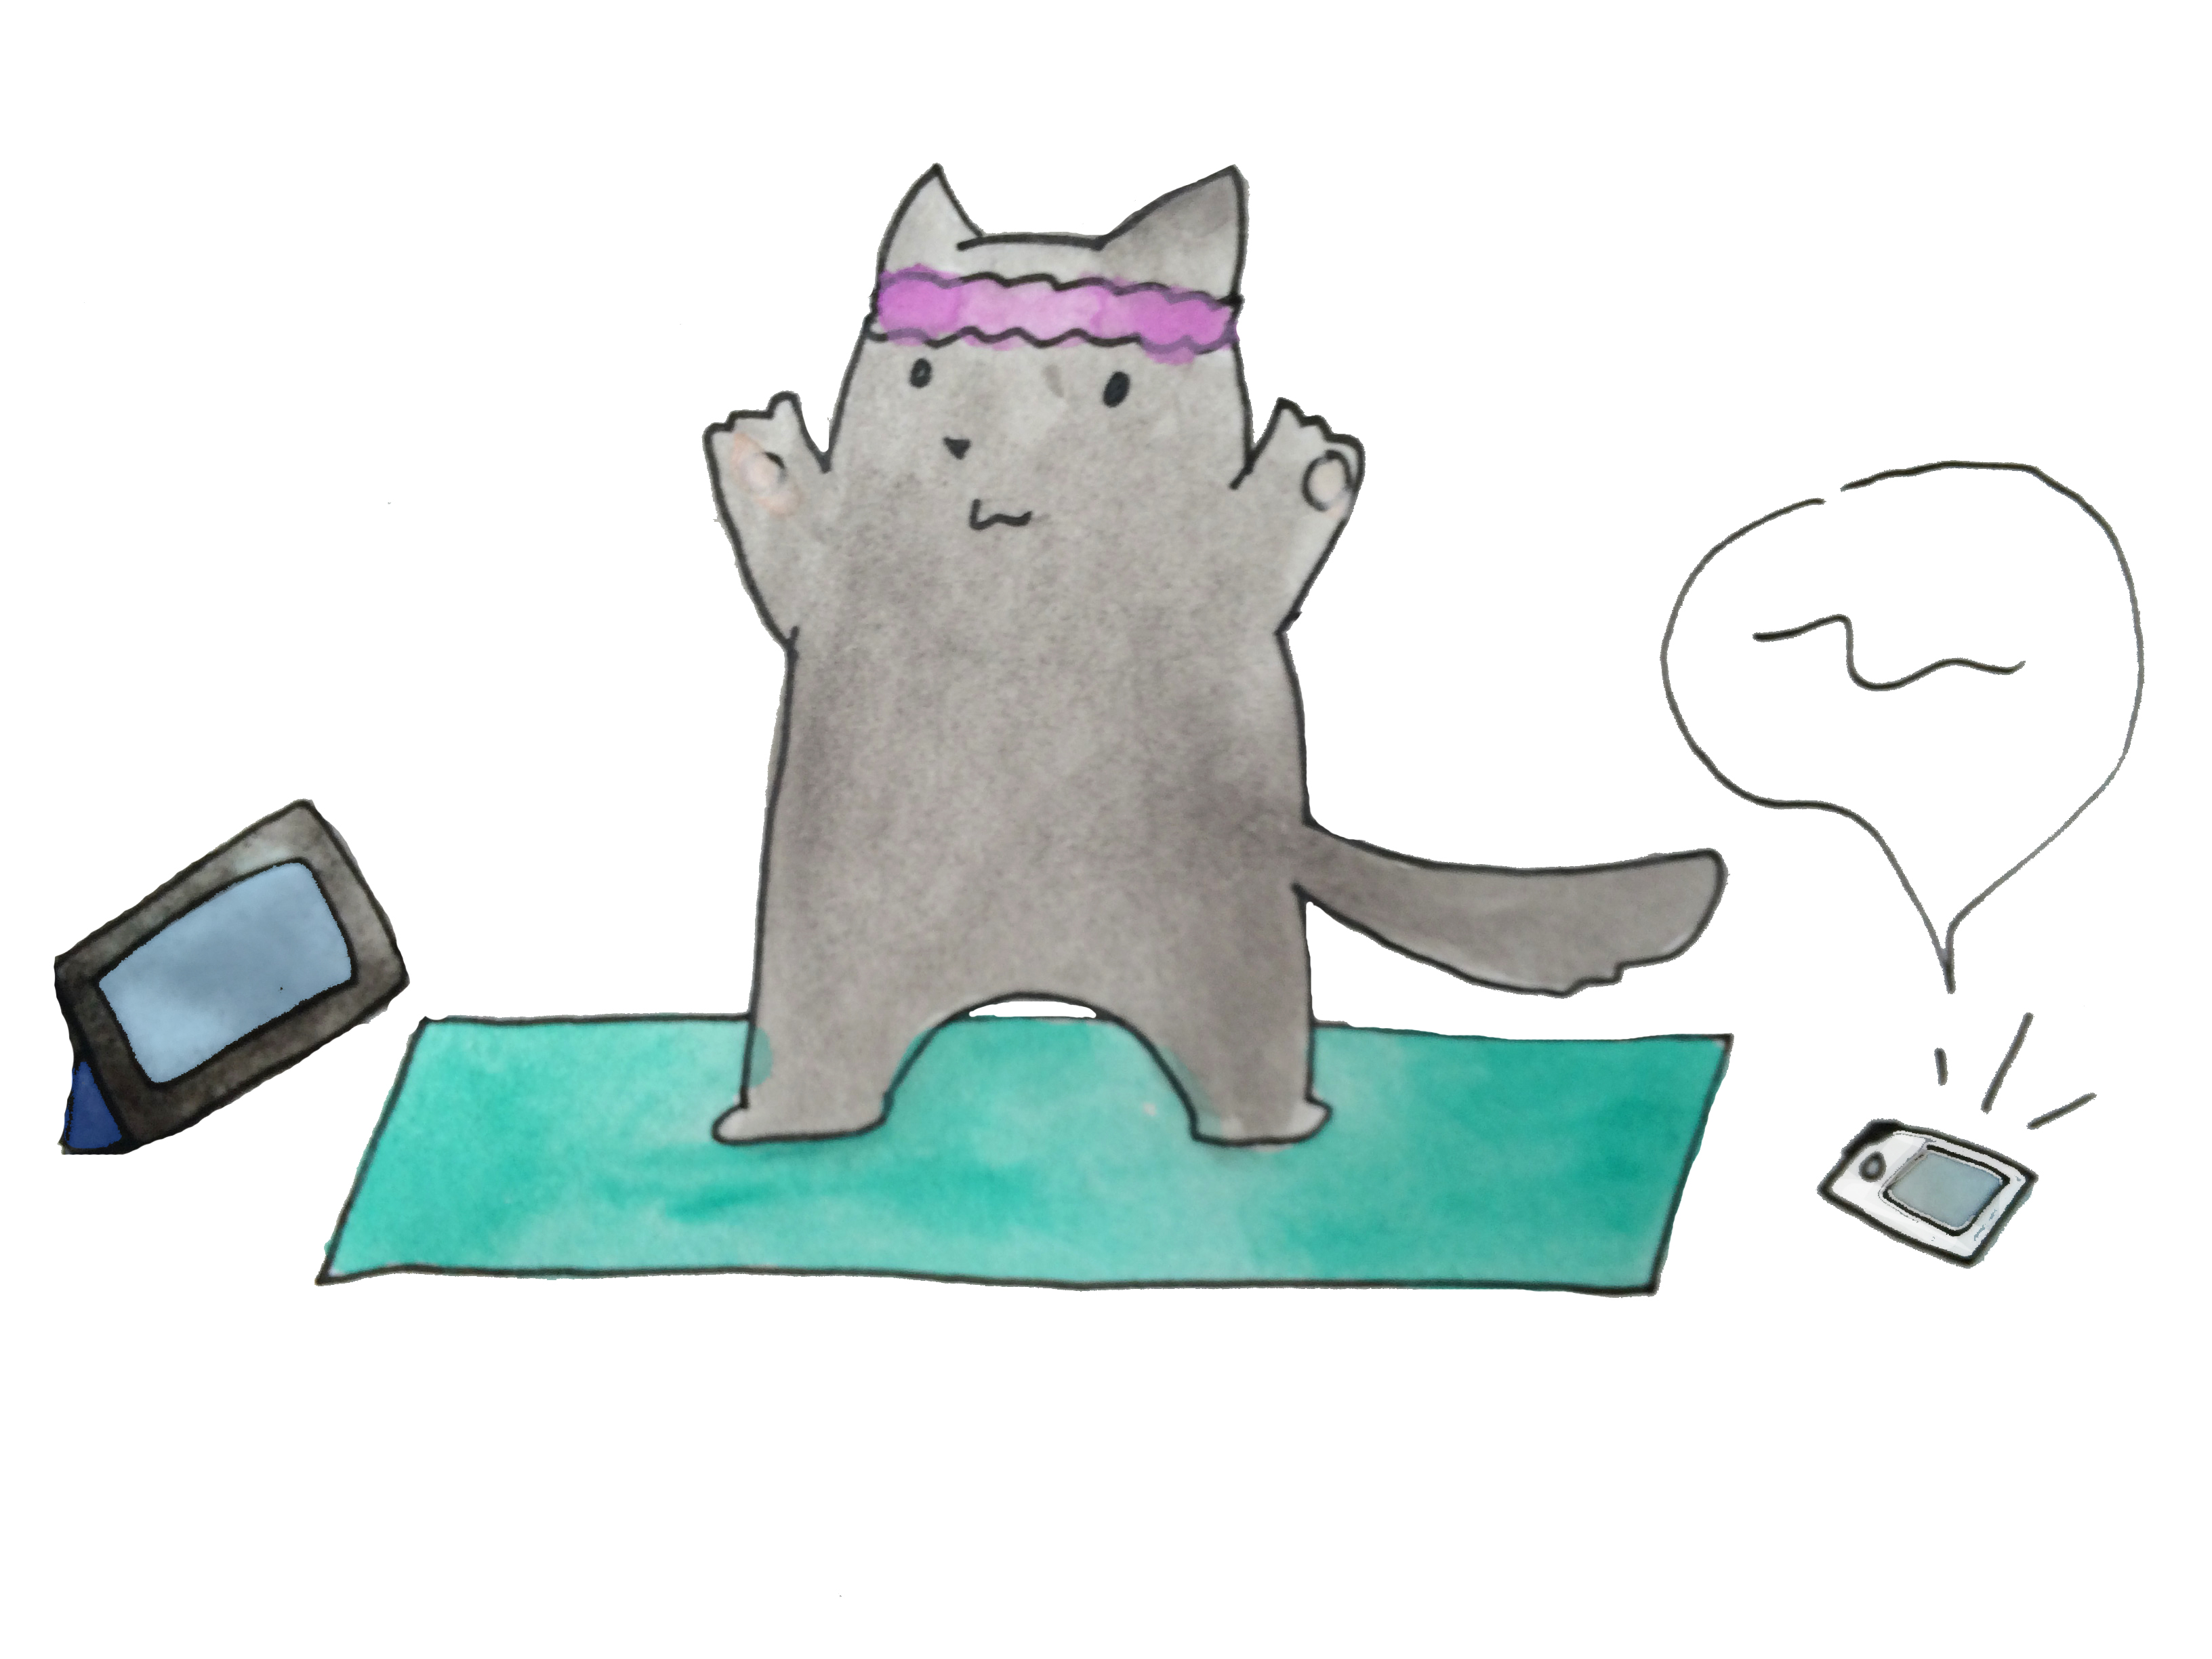 Yoga Cat Masters the Art of Technology